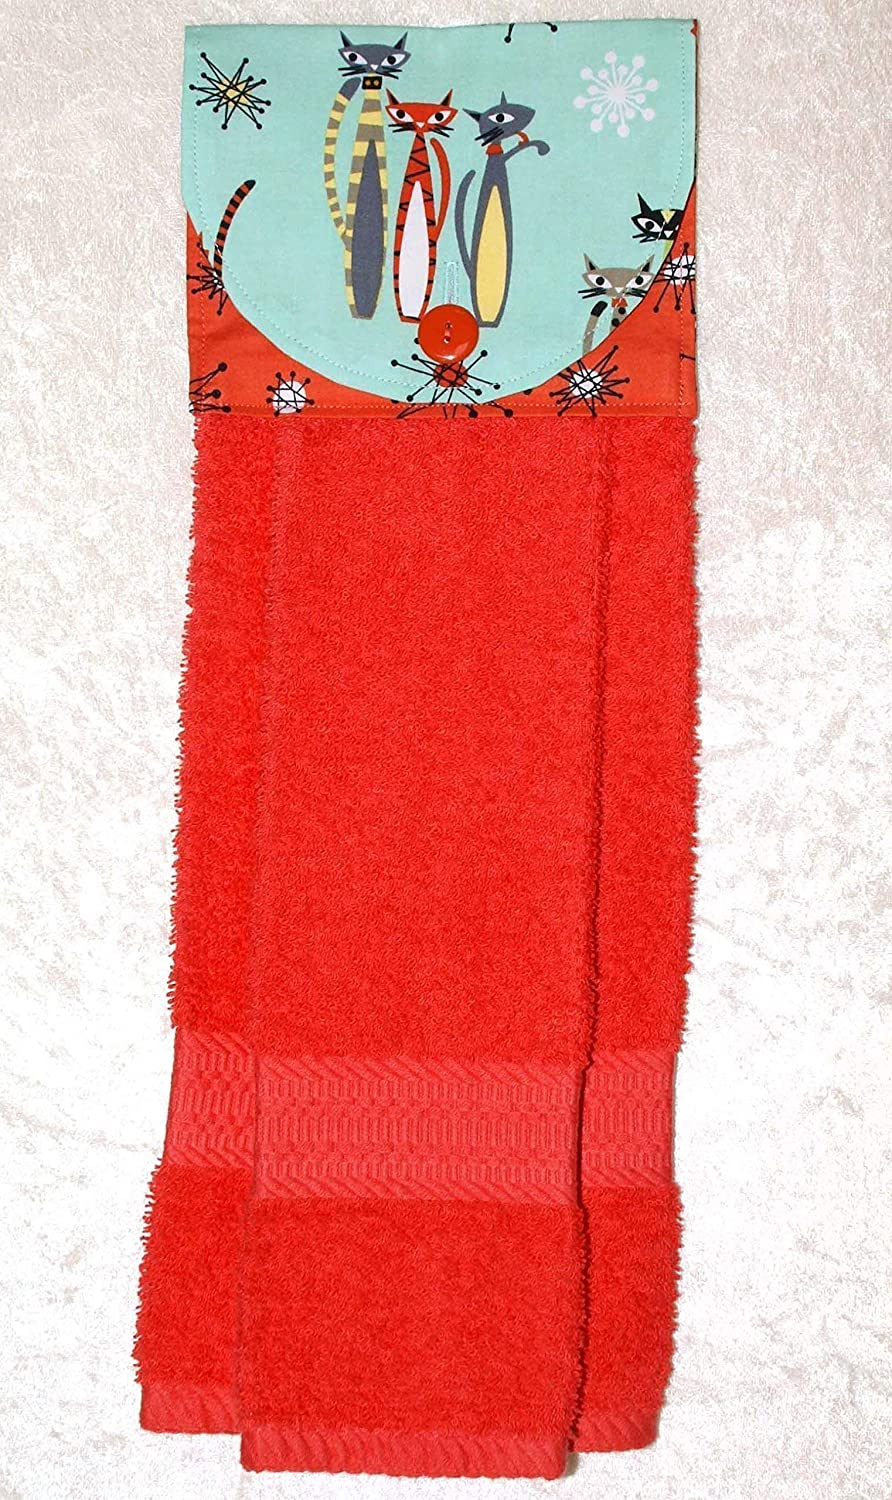 Mod Cats On Aqua with Coral Starburst Accent Fabric Plush Coral Kitchen Towel Hanging Hand Towel